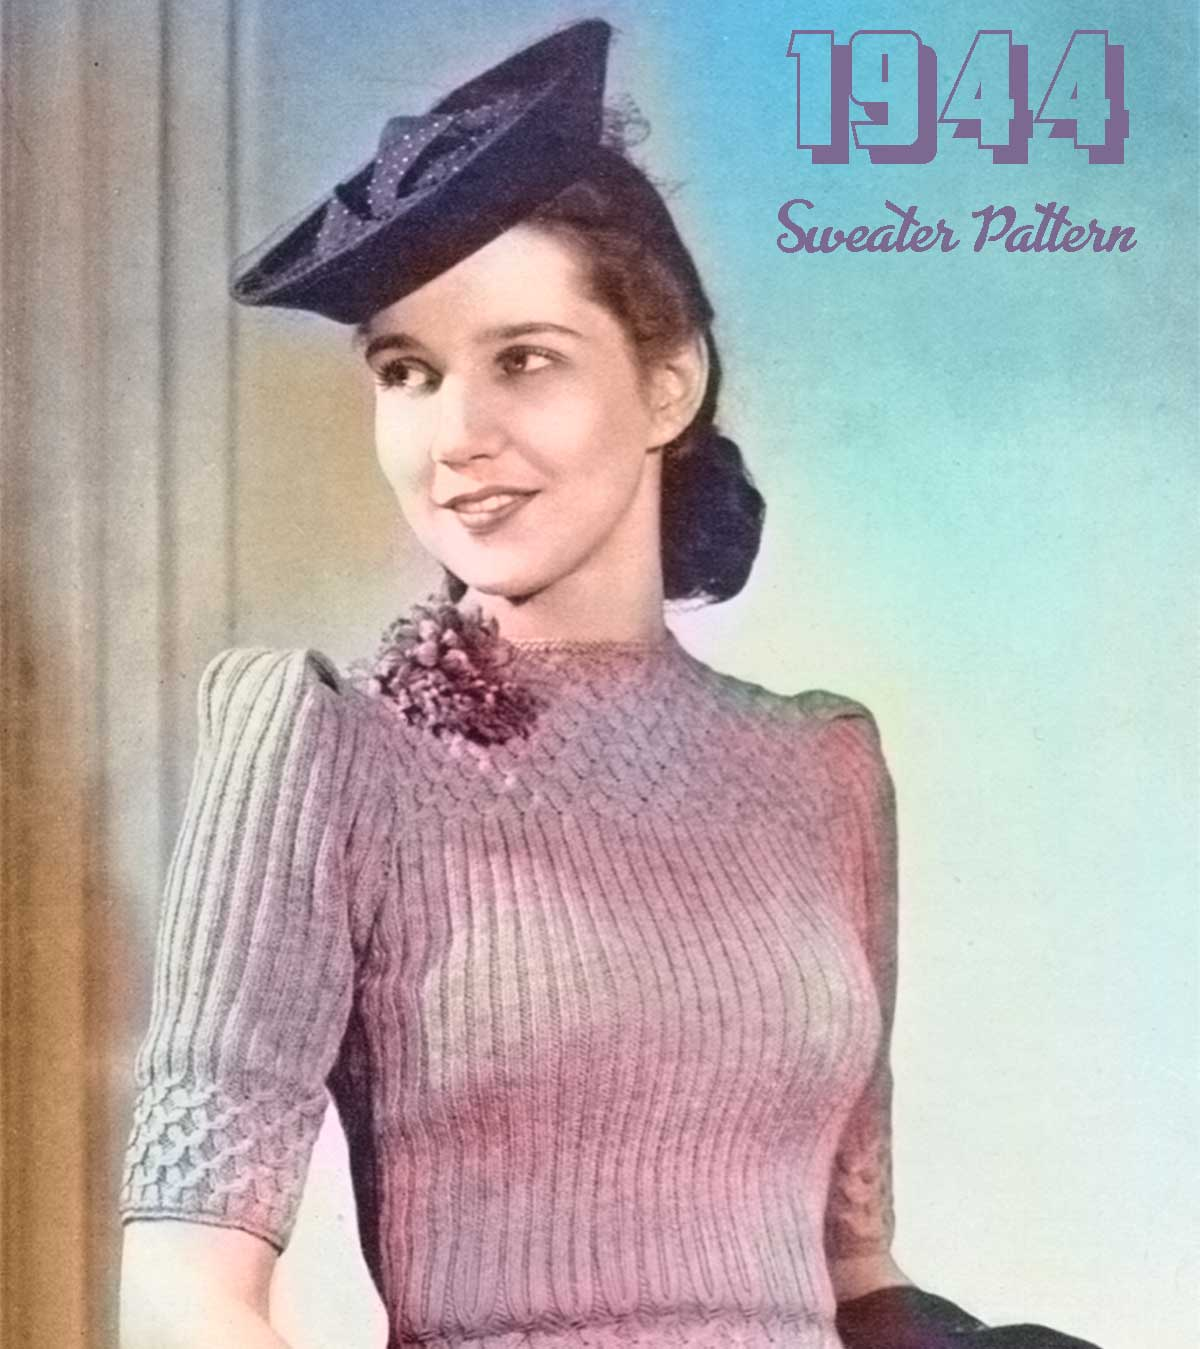 War-Era-Sweater-Pattern-1944 - Patons & Baldwins